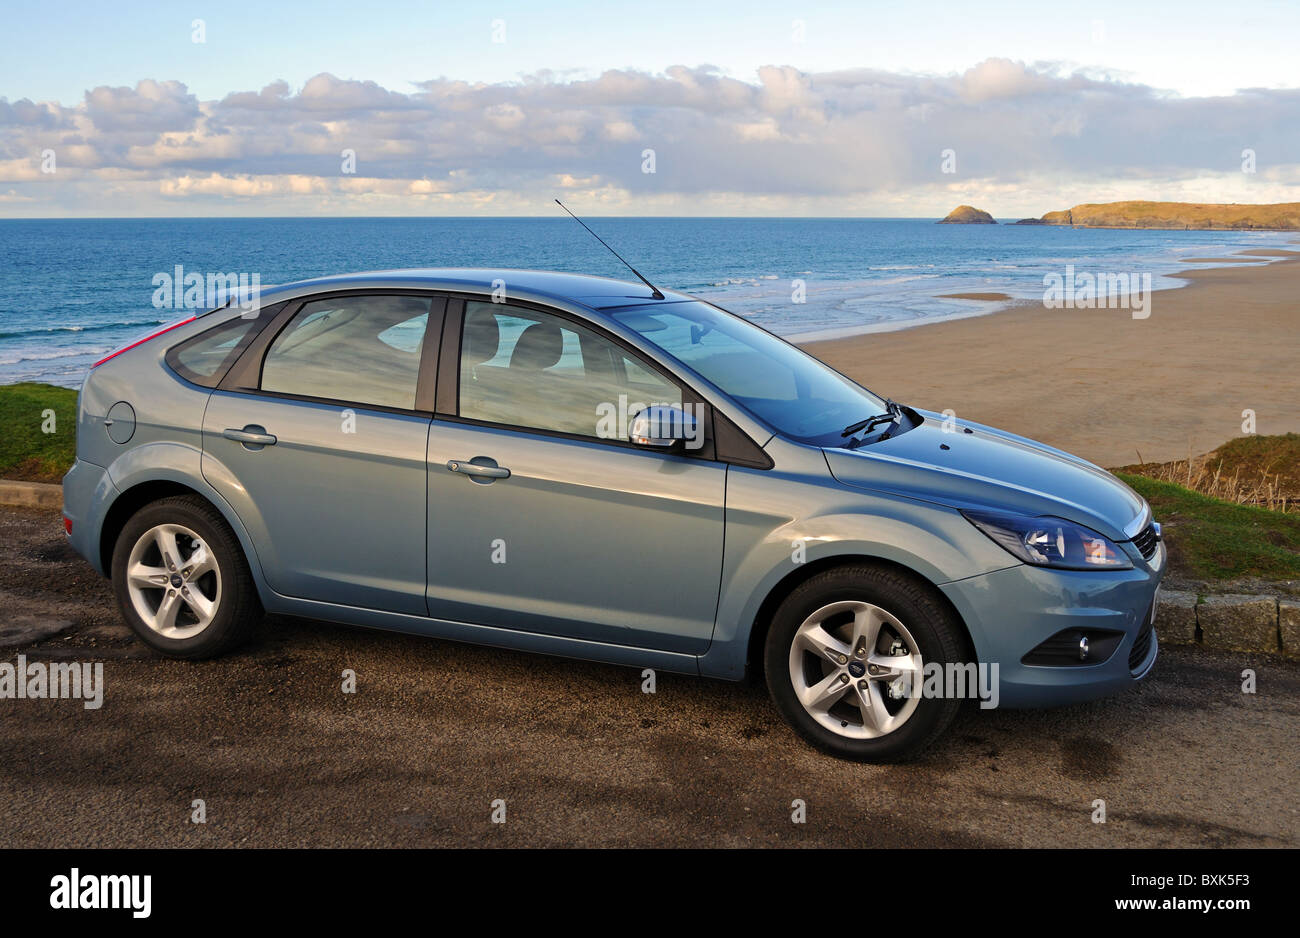 A Ford Focus Zetec 1.6 L parked overlooking the beach at Perranporth in Cornwall, UK - Stock Image